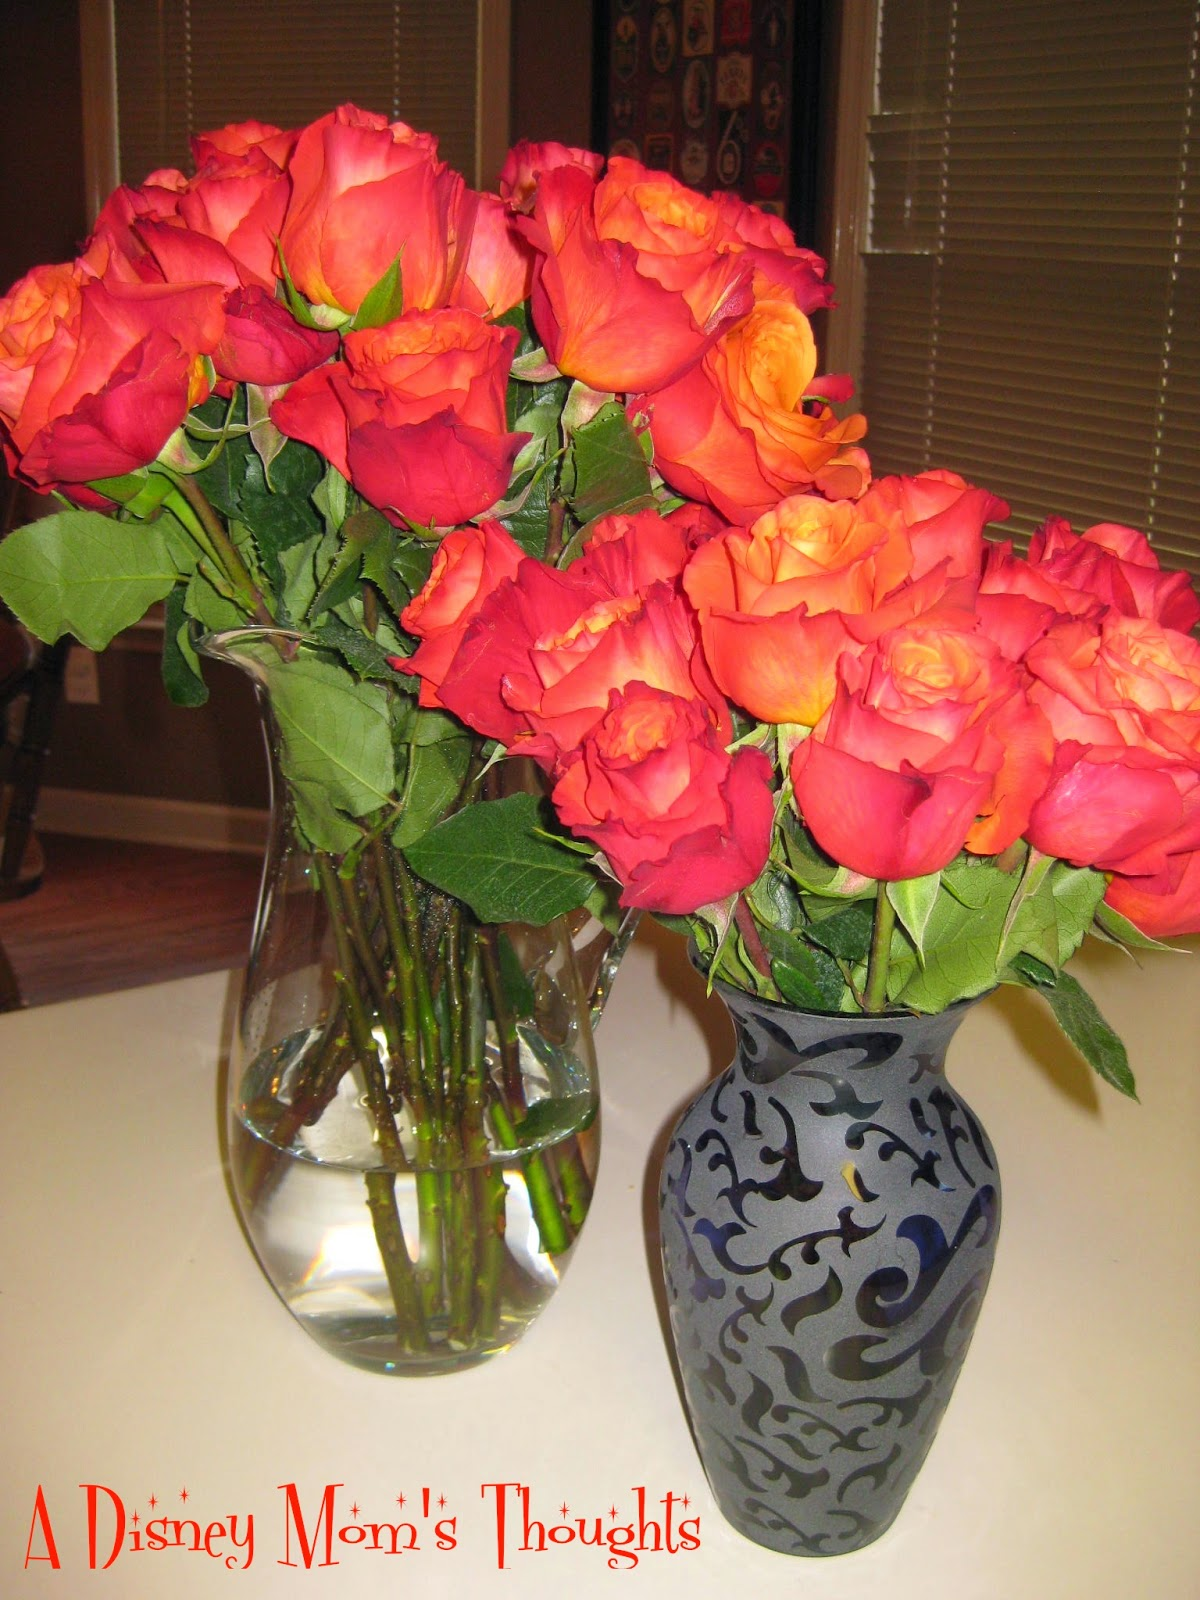 Flowers in vase change water - Flowers In Vase Change Water When I Started Arranging My Flowers After I Had Cut